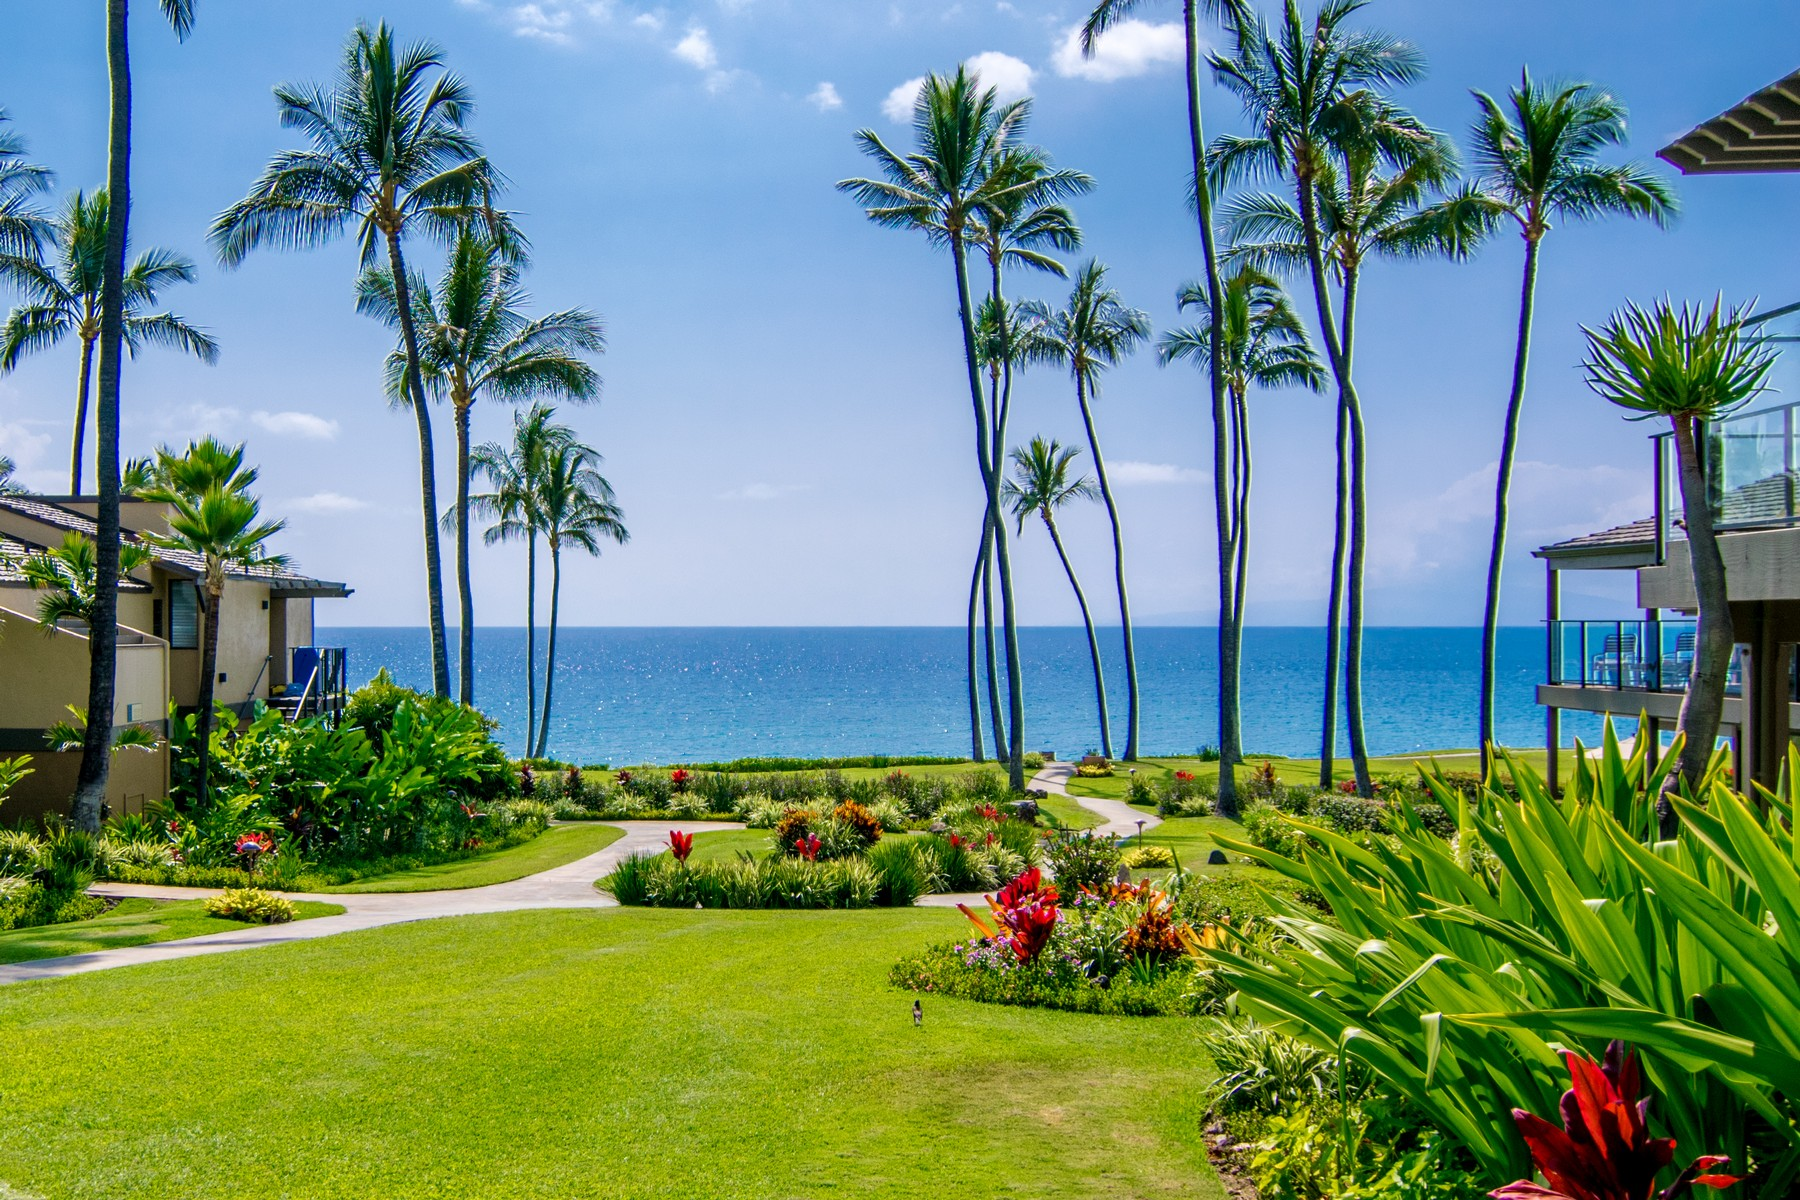 Condominium for Sale at First One Bedroom Wailea Elua Oceanfront Condo in 9 Years! 3600 Wailea Alanui Drive, Wailea Elua 1401 Wailea, Hawaii 96753 United States